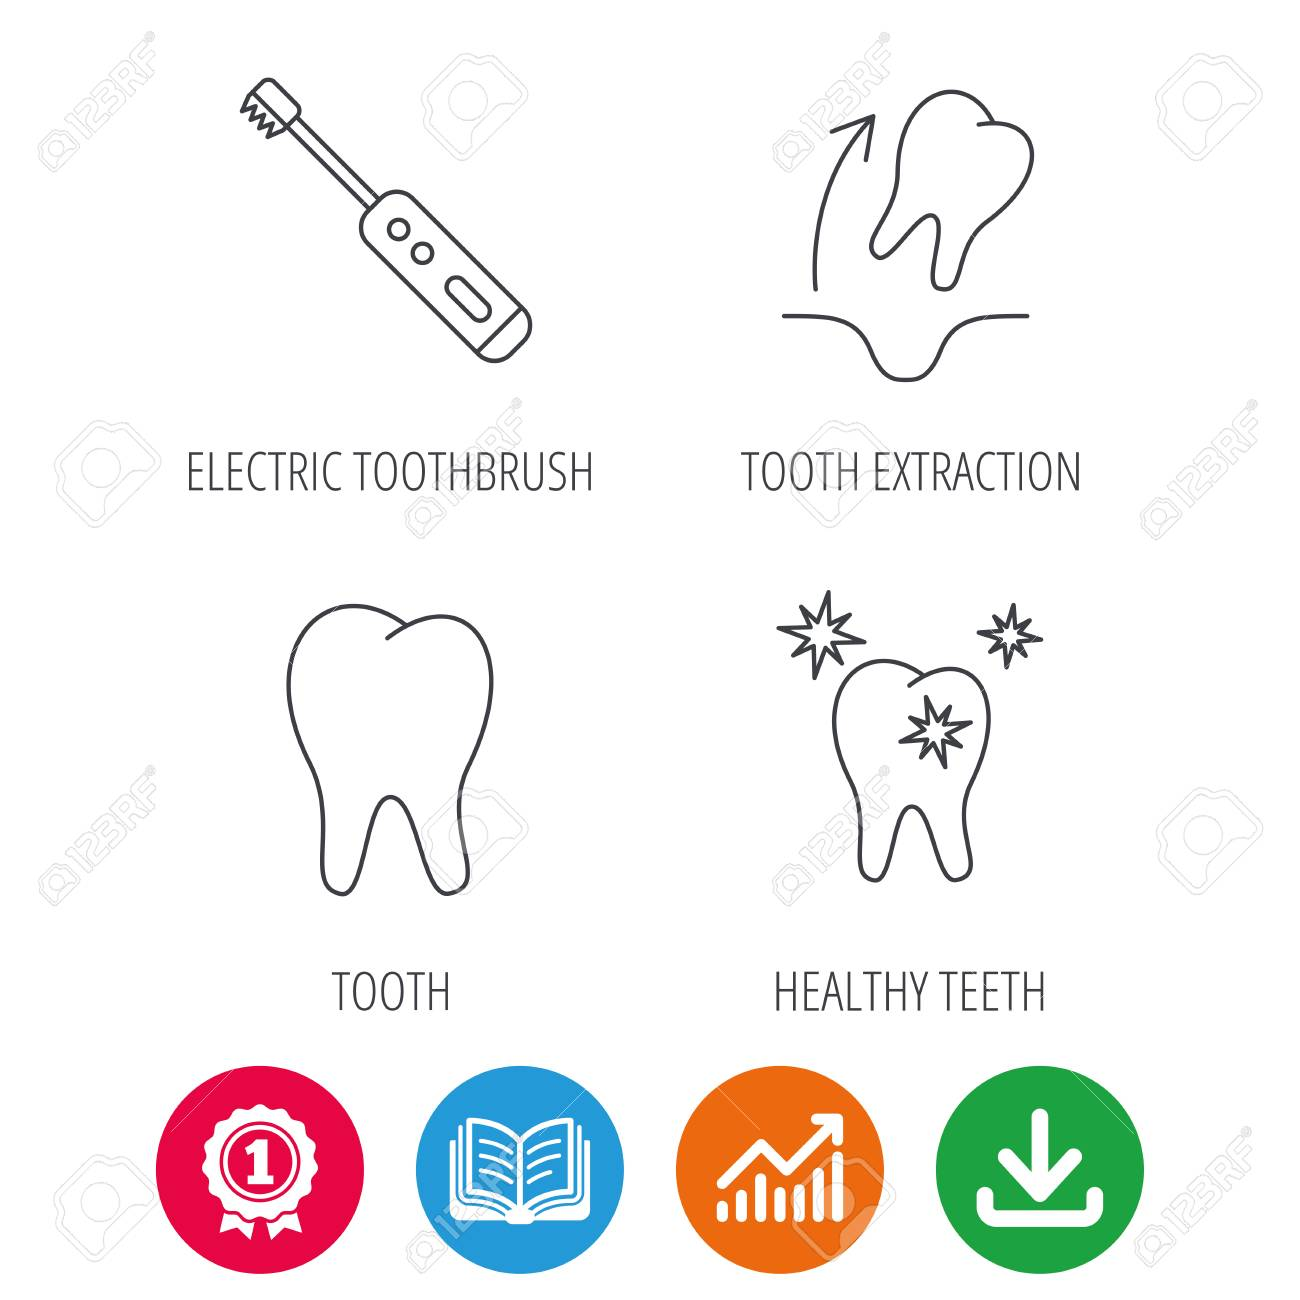 Tooth diagram web search for wiring diagrams tooth extraction electric toothbrush icons healthy teeth linear rh 123rf com tooth diagram with numbers tooth diagram quiz ccuart Images